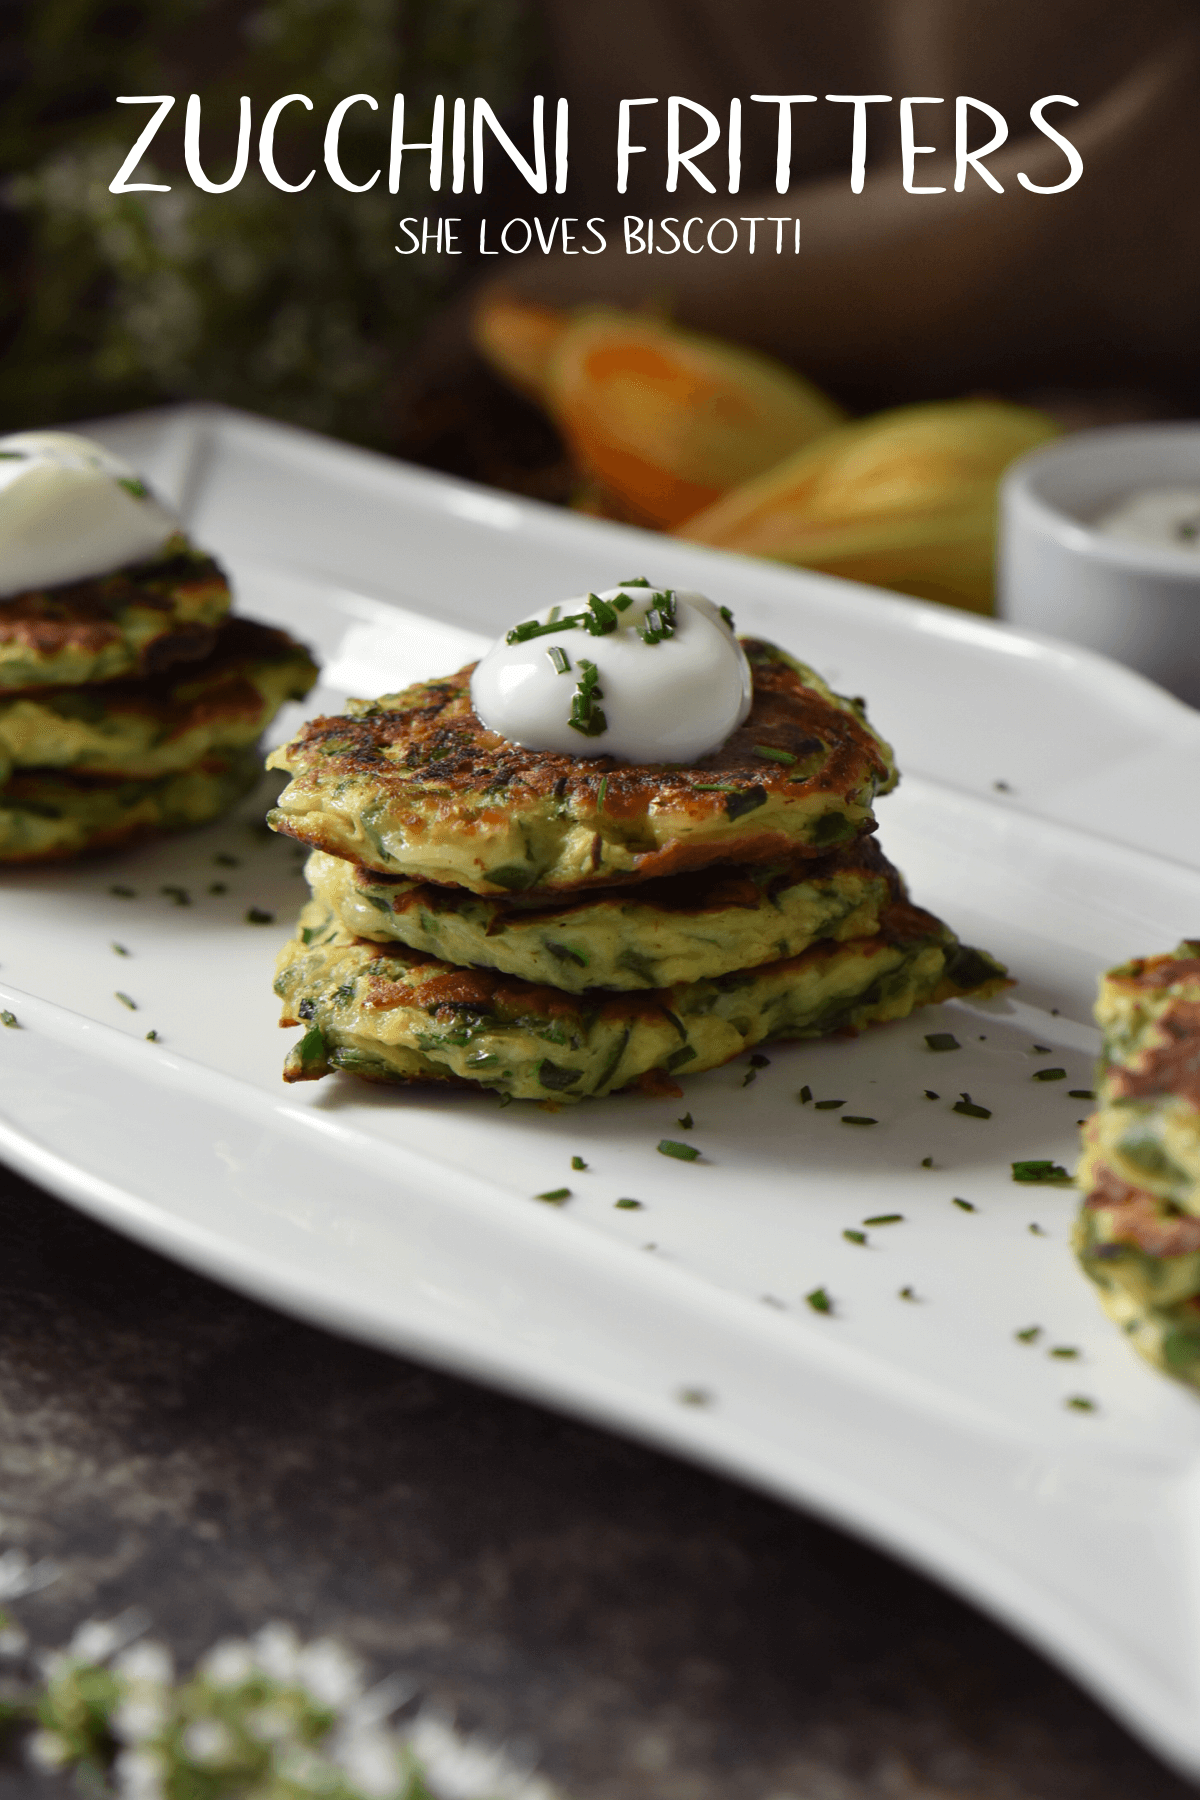 Zucchini Fritters-an easy and tasty appetizer or light meal.